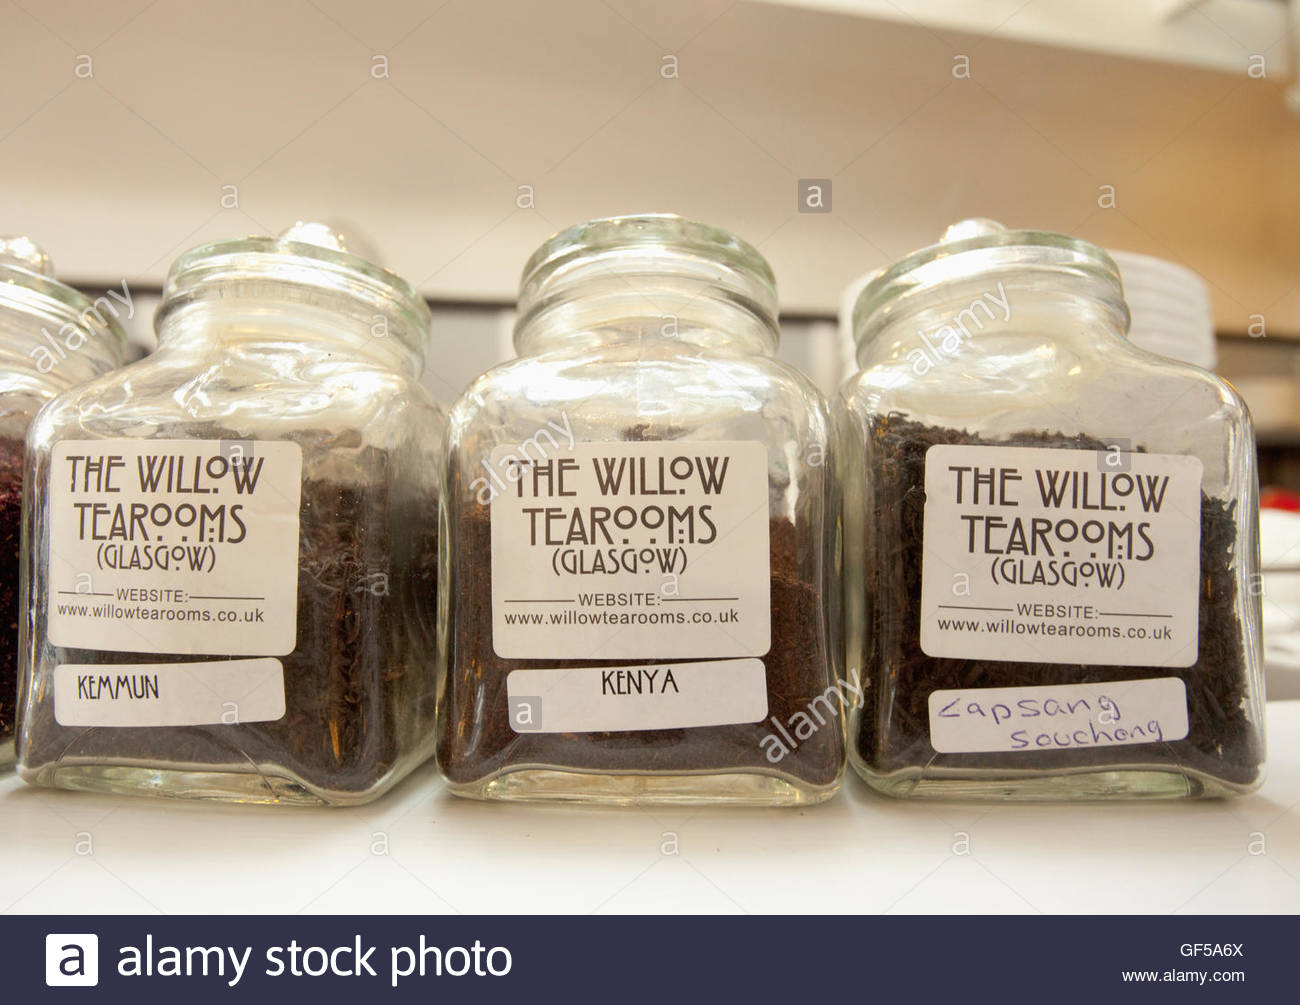 Jars of  different types of tea leaves in the Willow Tearoom designed by celebrated Glasgow architect, Charles Rennie - Stock Image